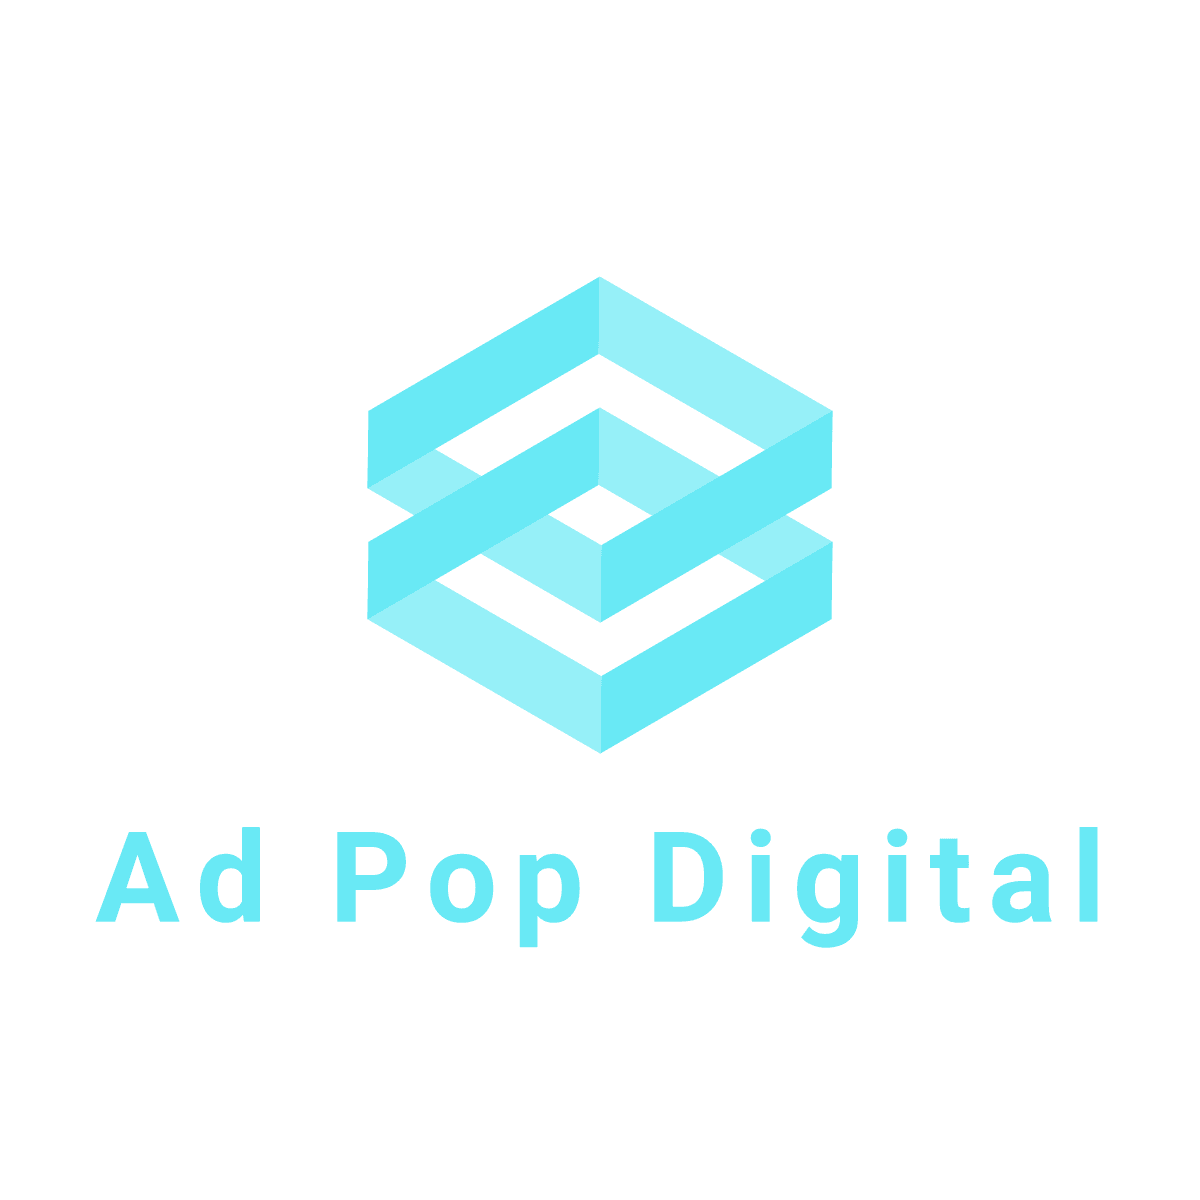 Ad Pop Digital